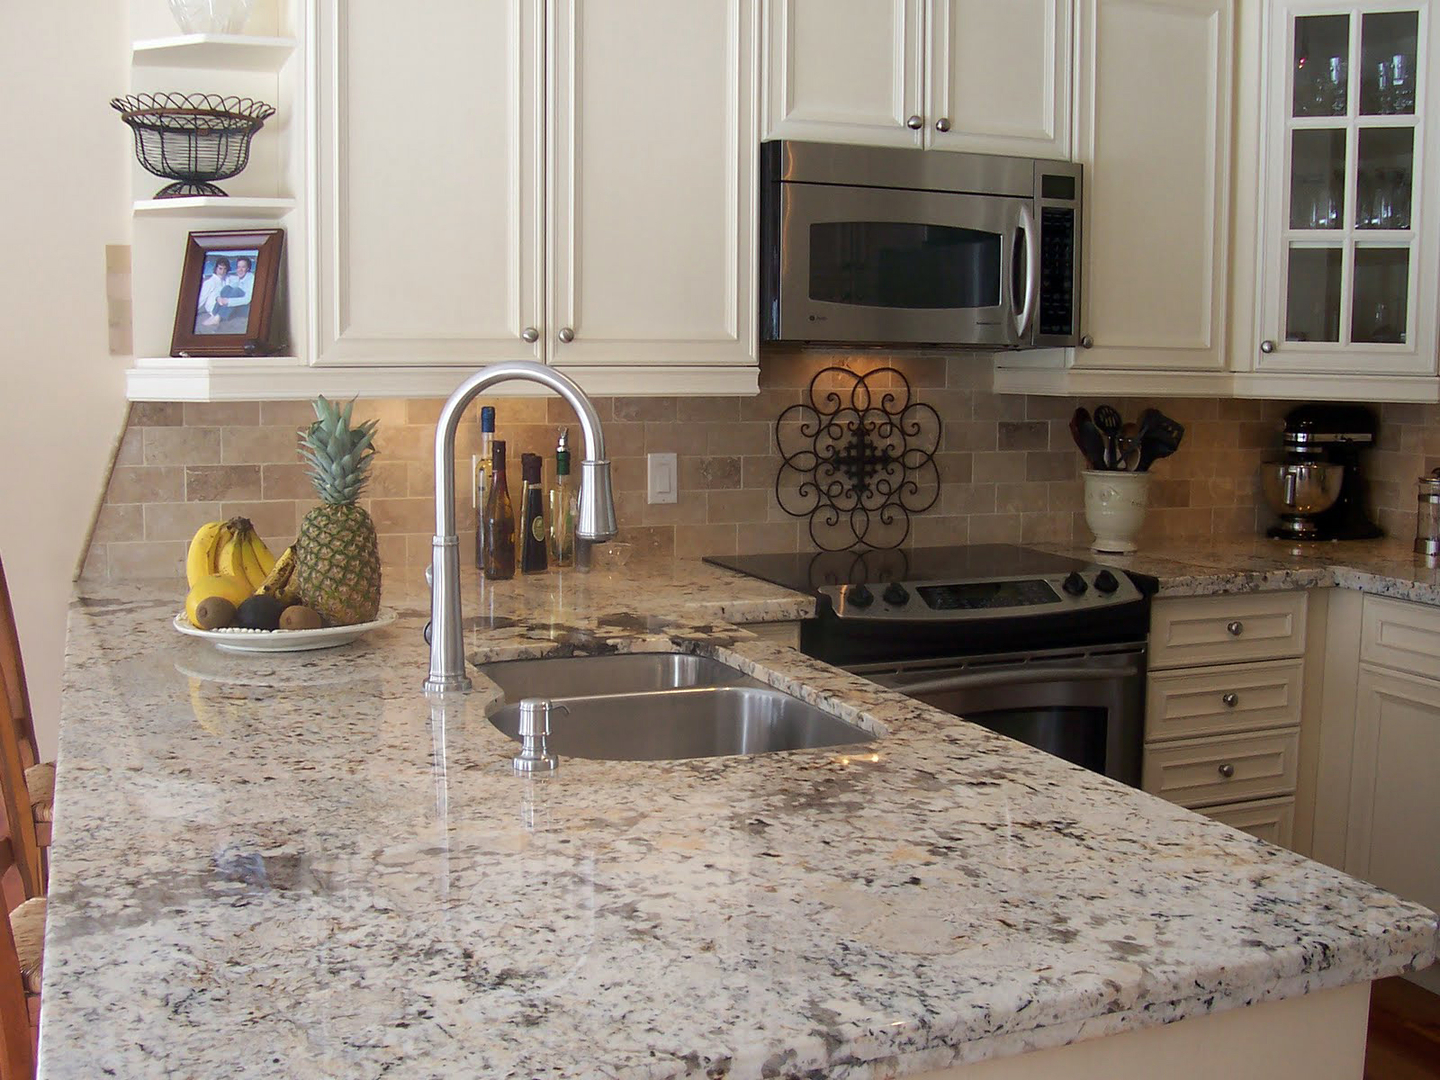 Kitchen And Granite 47cb6ff2ebb9c0d8c2c9ddb82b0d84acaccesskeyid12dea85595a7399f095ddisposition0alloworigin1